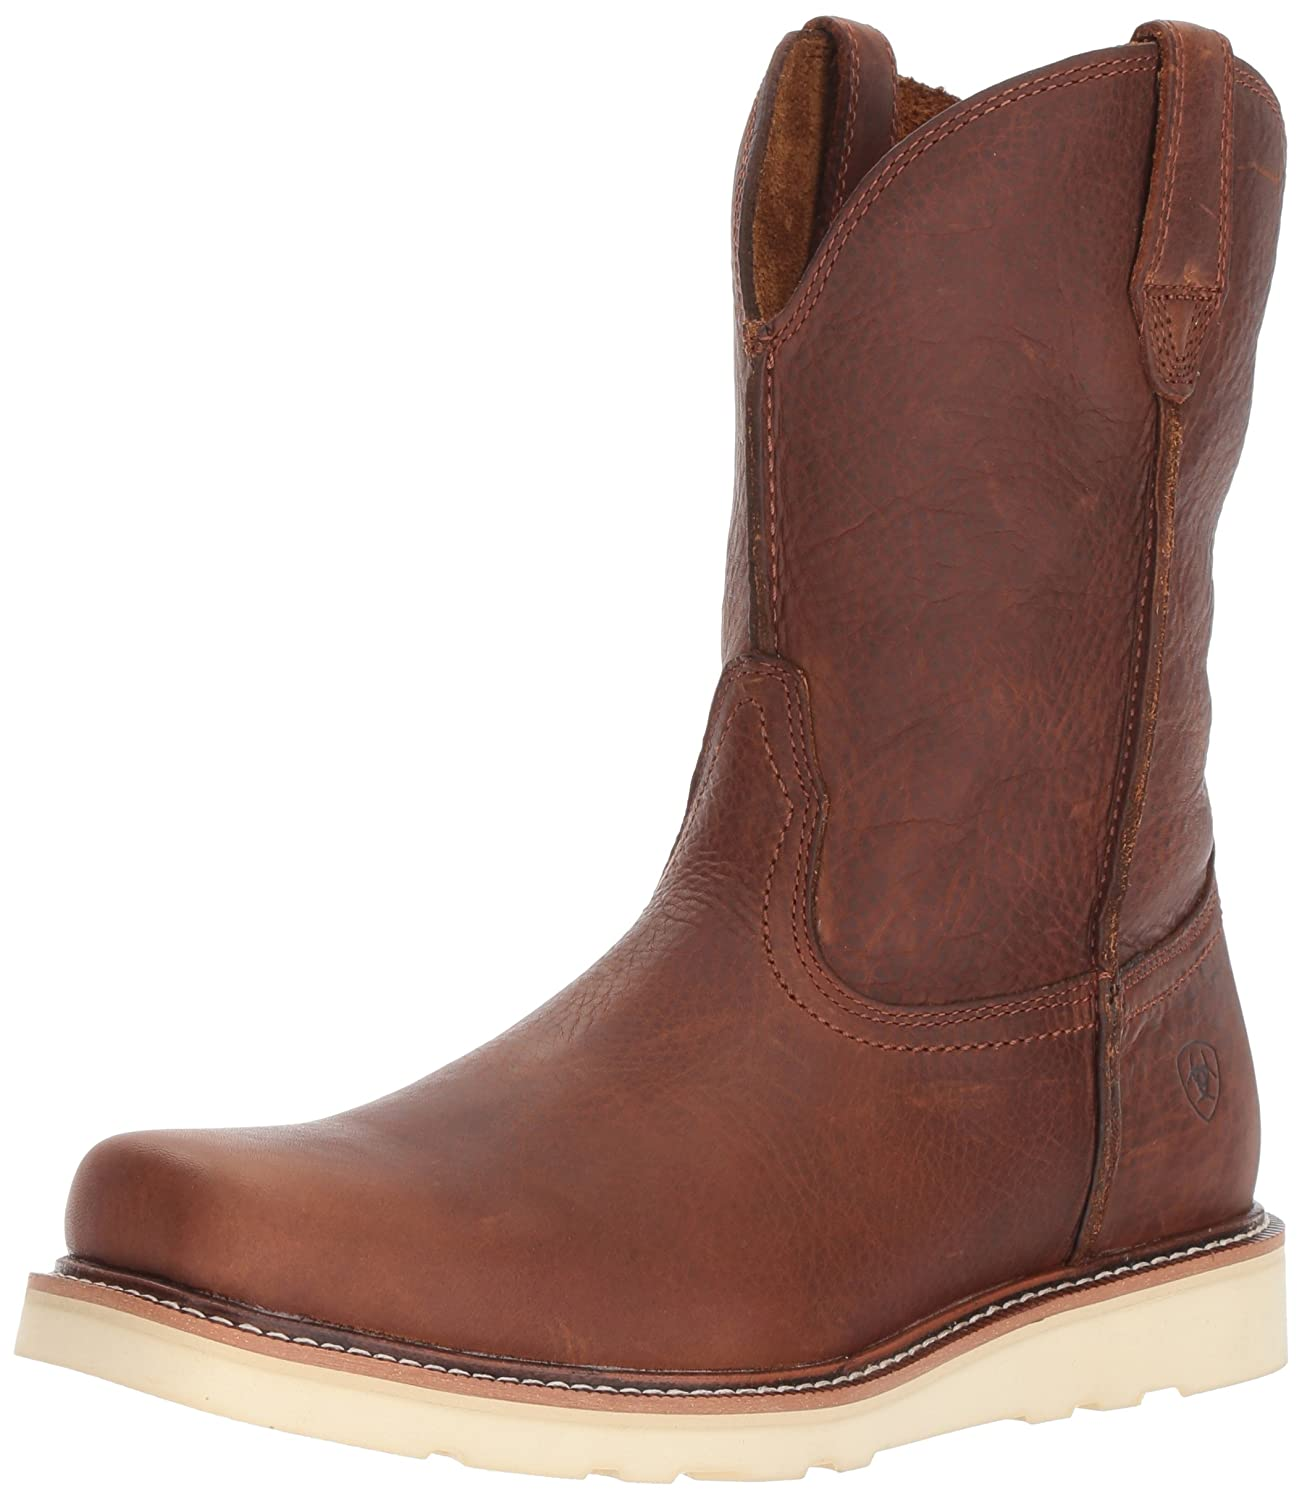 Ariat Men's Rambler Recon Square Toe Work Stiefel